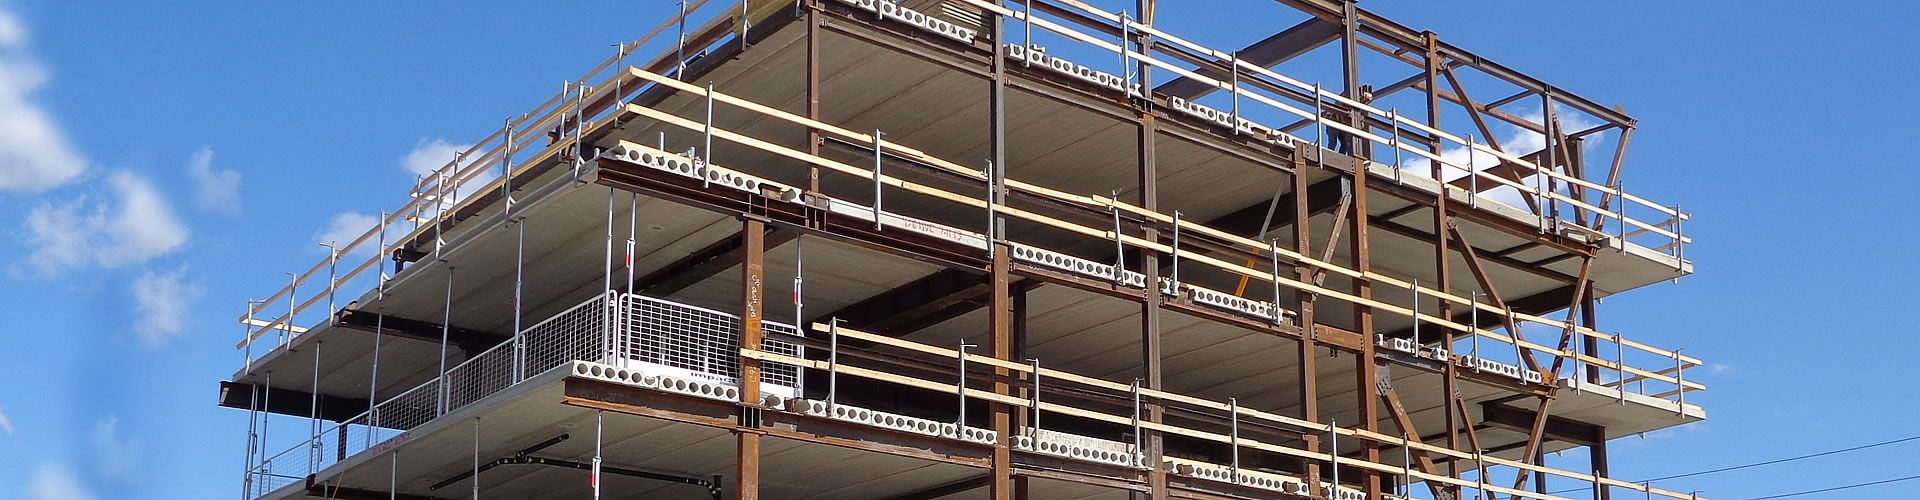 Hollowcore construction